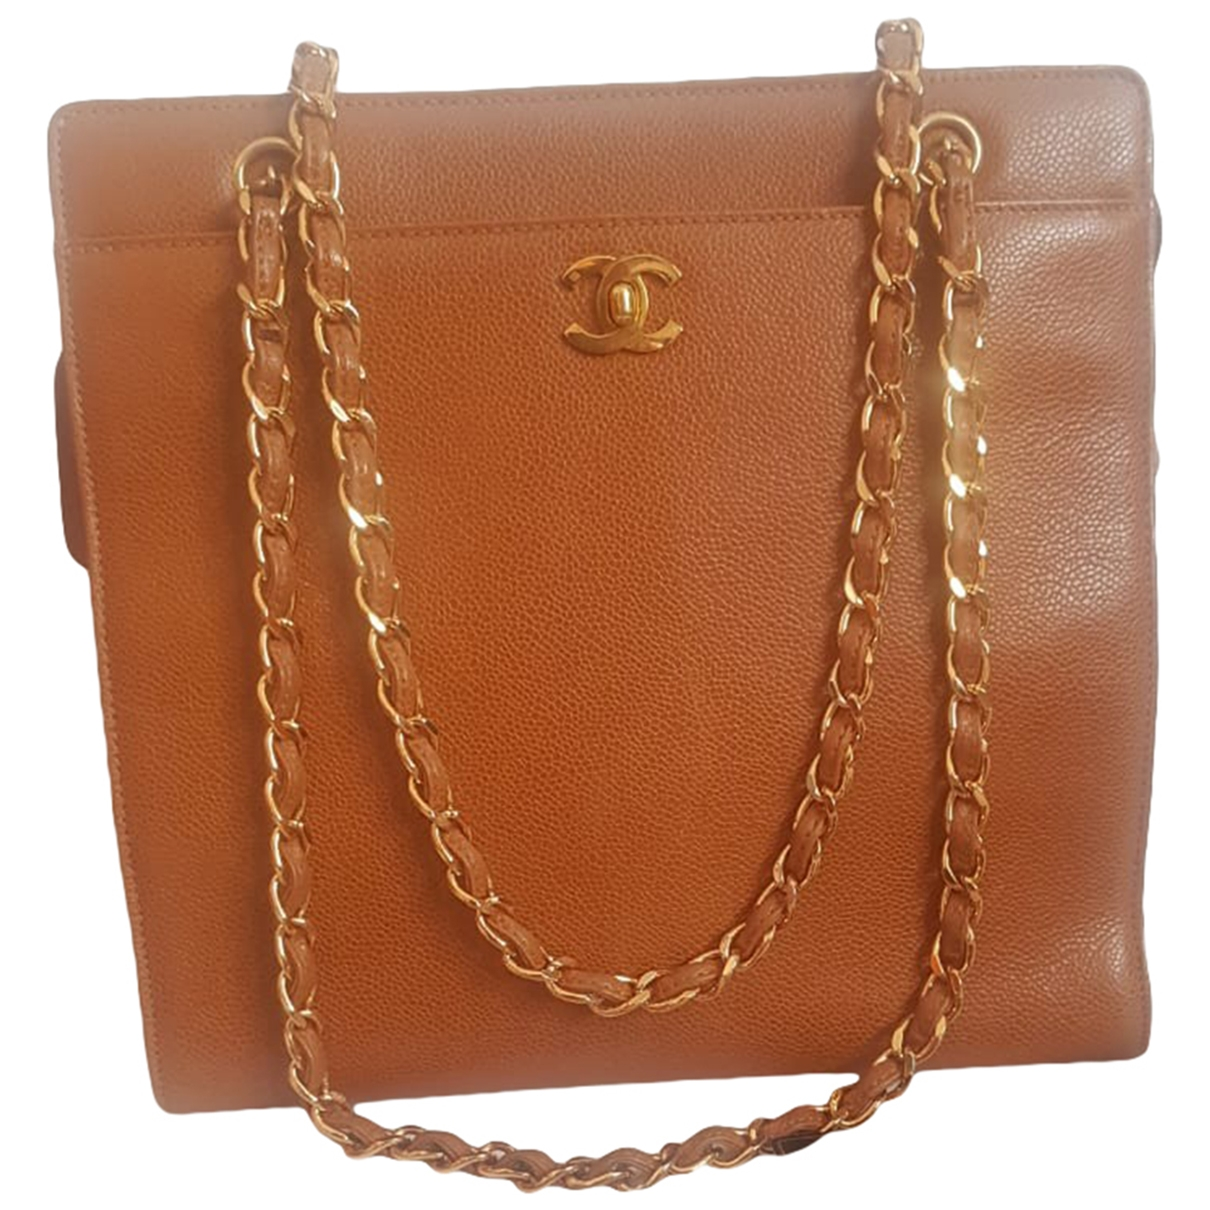 Chanel \N Gold Leather handbag for Women \N